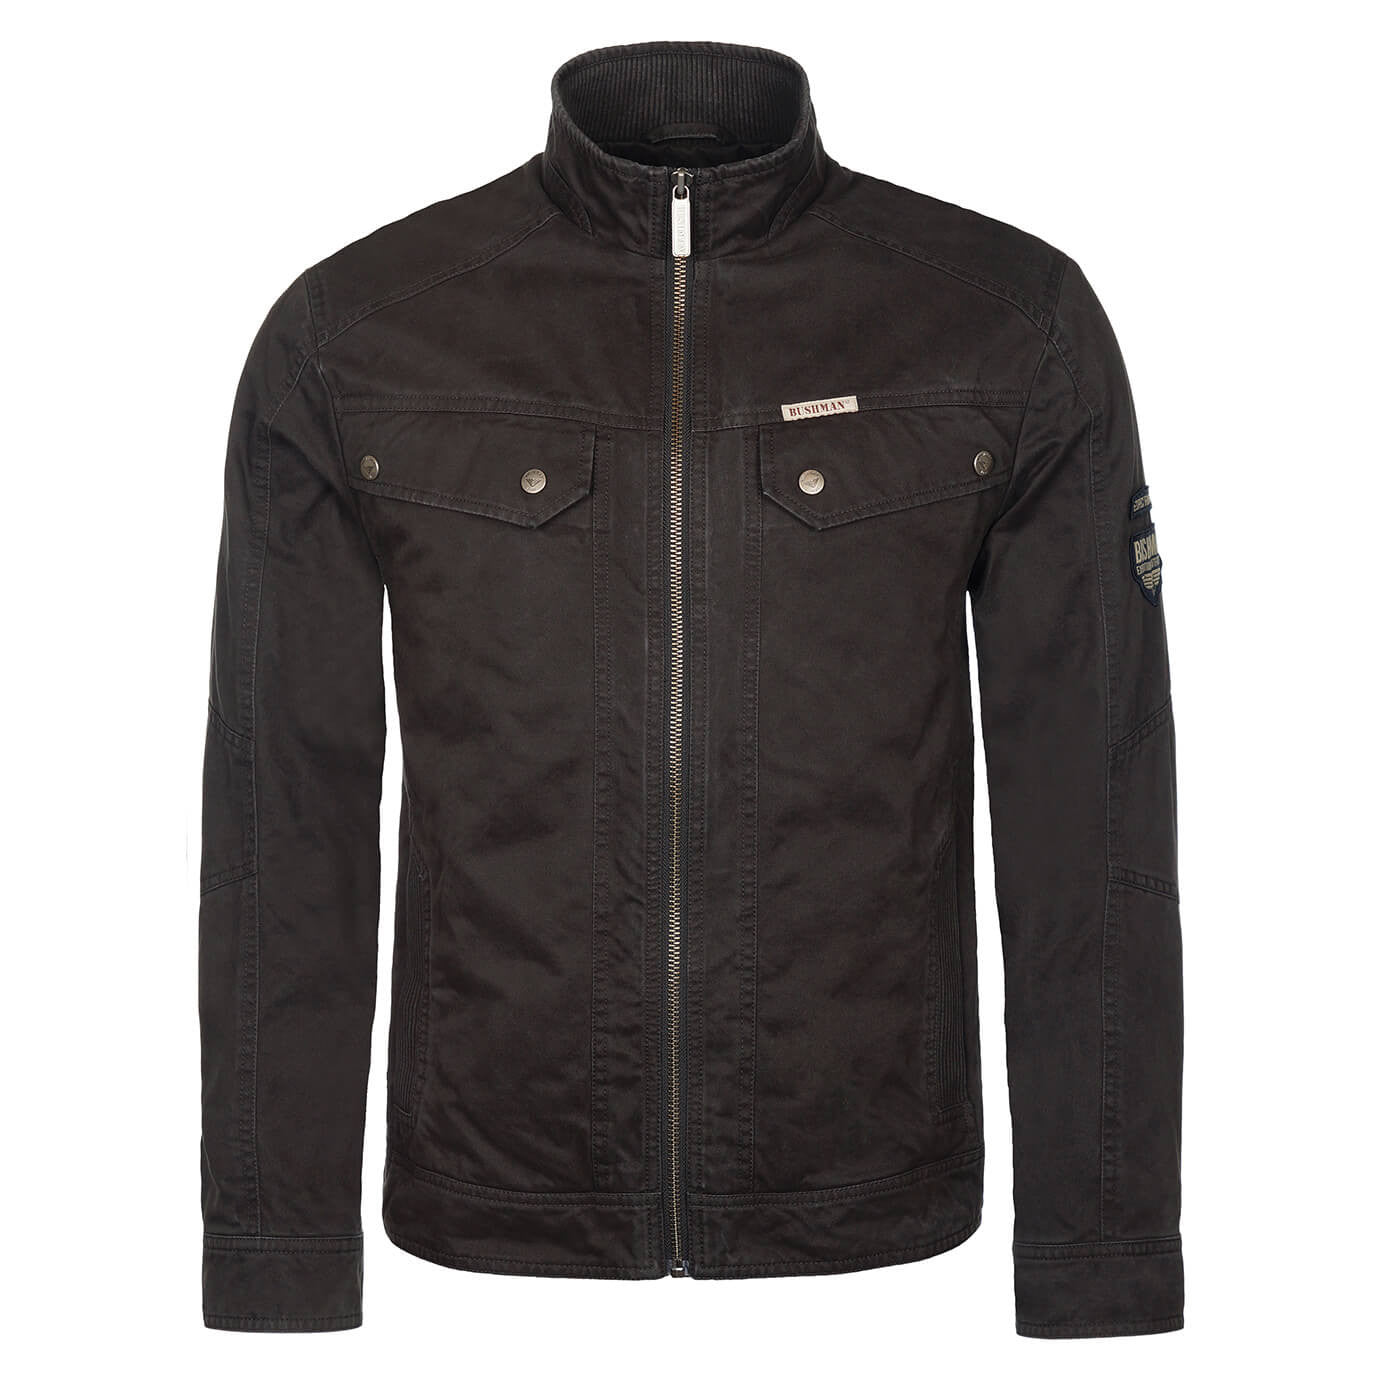 BUSHMANSHOP GRIFFIN MEN'S BROWN BLACK HEAVY COTTON ZIP-UP RIDER JACKET